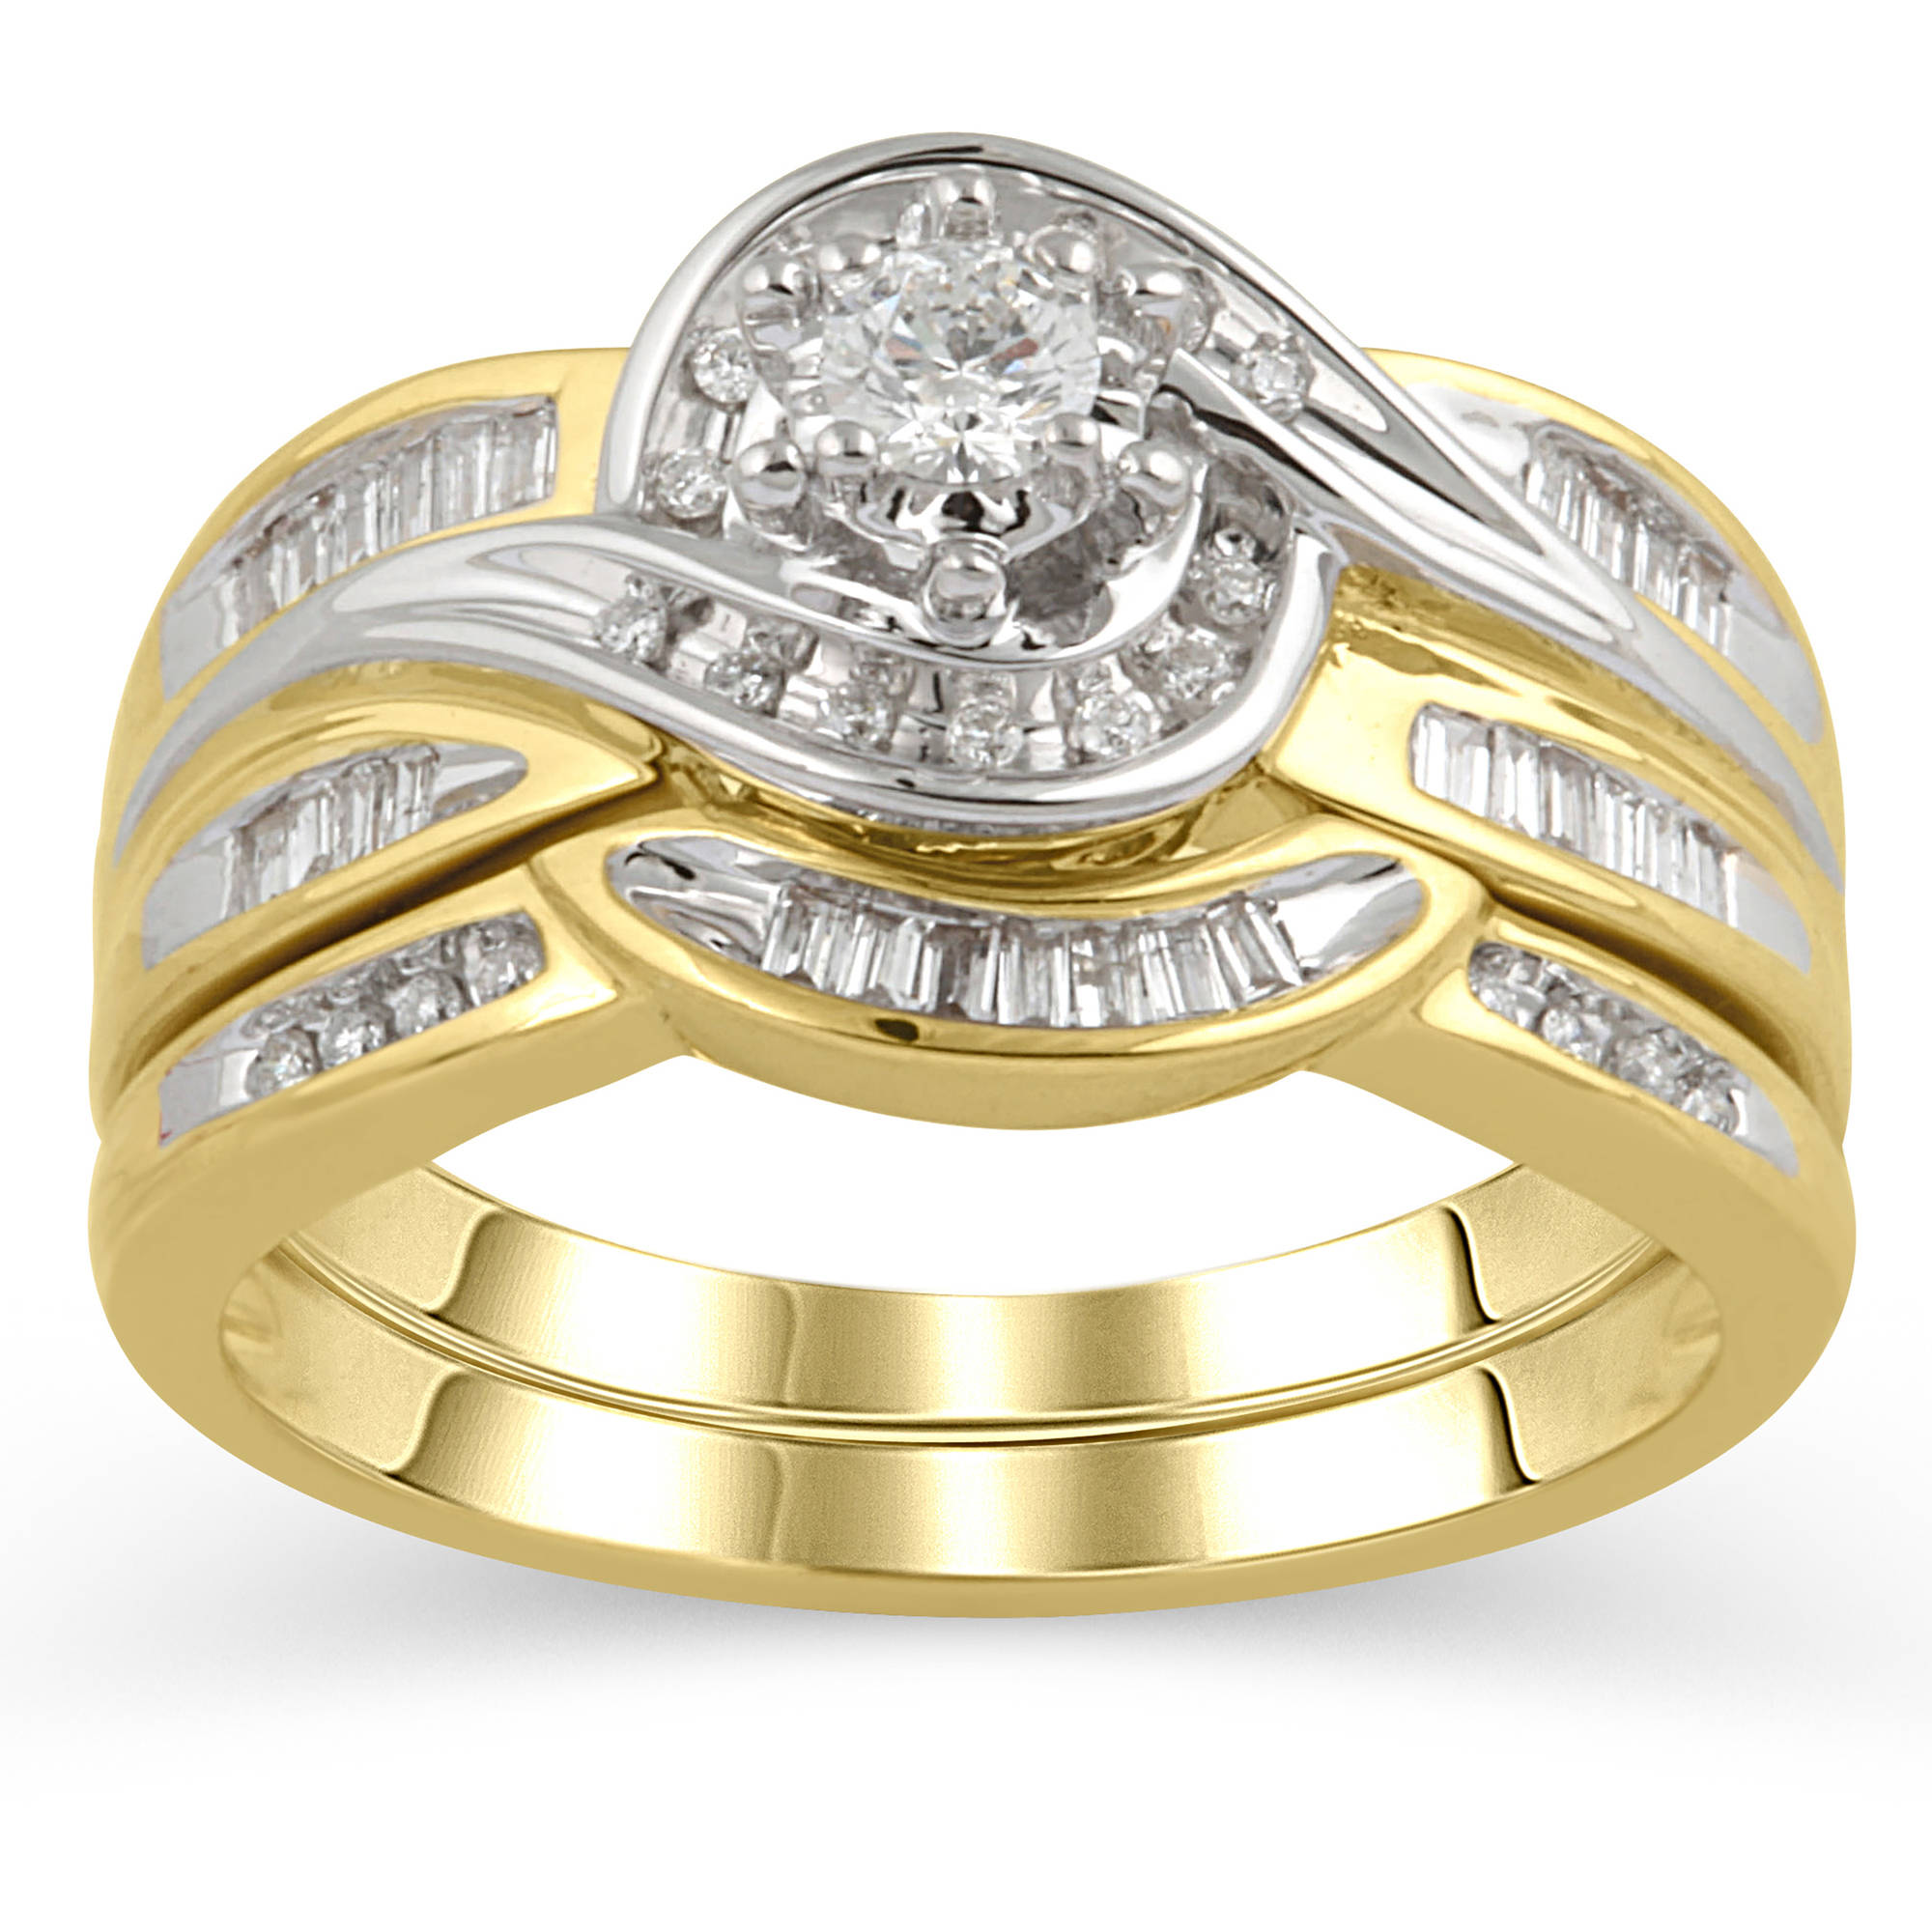 1 3 Carat T.W. Round and Baguette Diamond Bridal Set in 14kt Yellow Gold by